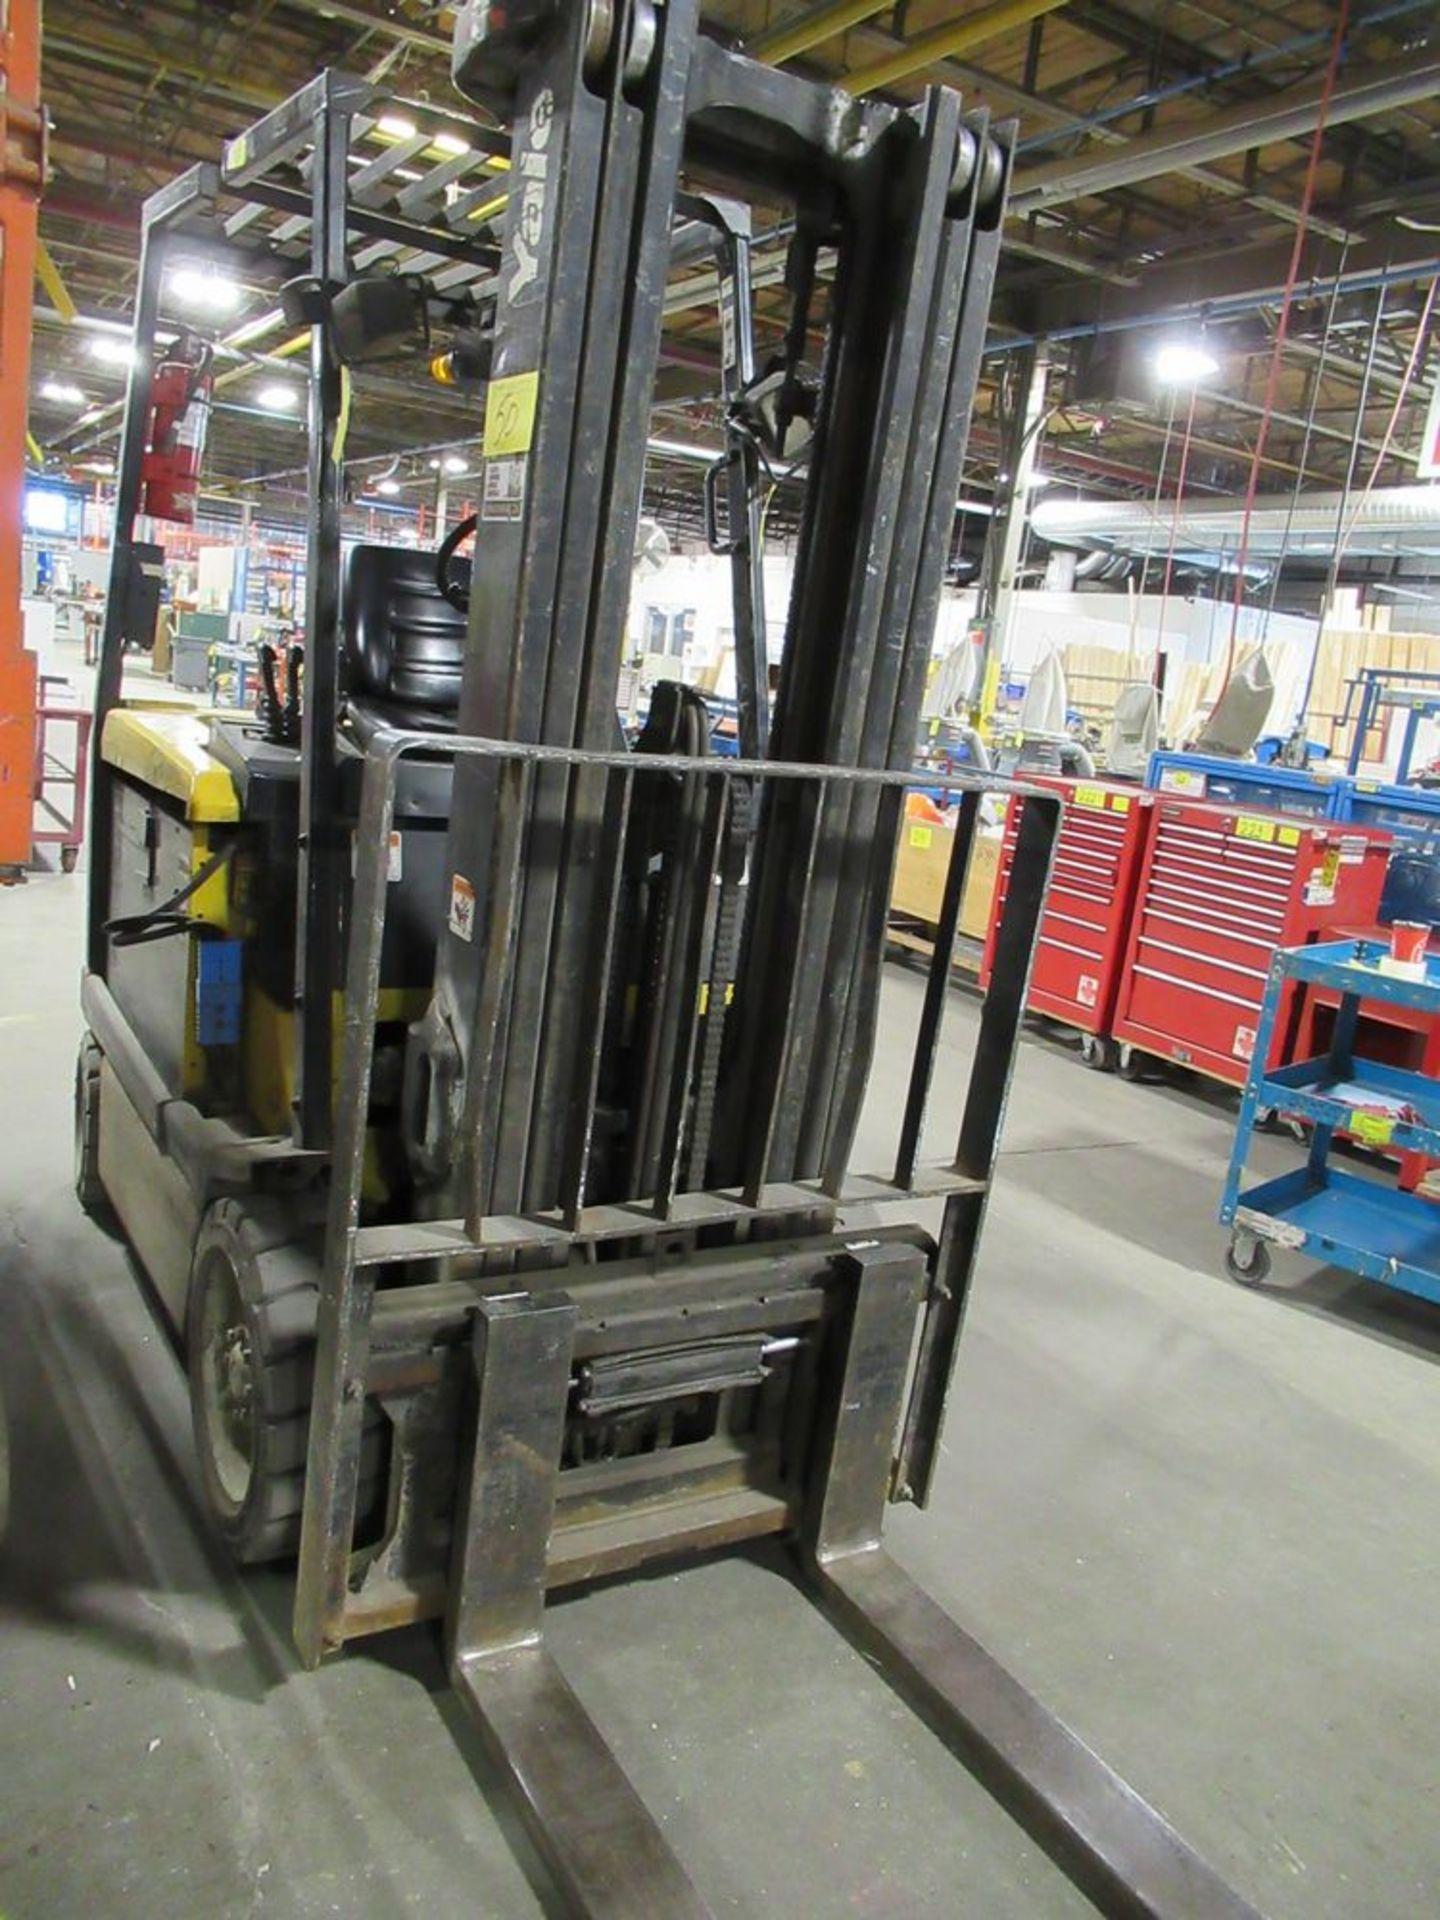 YALE ERC050RGN48TE084 ELECTRIC FORKLIFT, 5,000LB CAP., 3-STAGE MAST, SIDE SHIFT, S/N E108V12514X, - Image 4 of 8